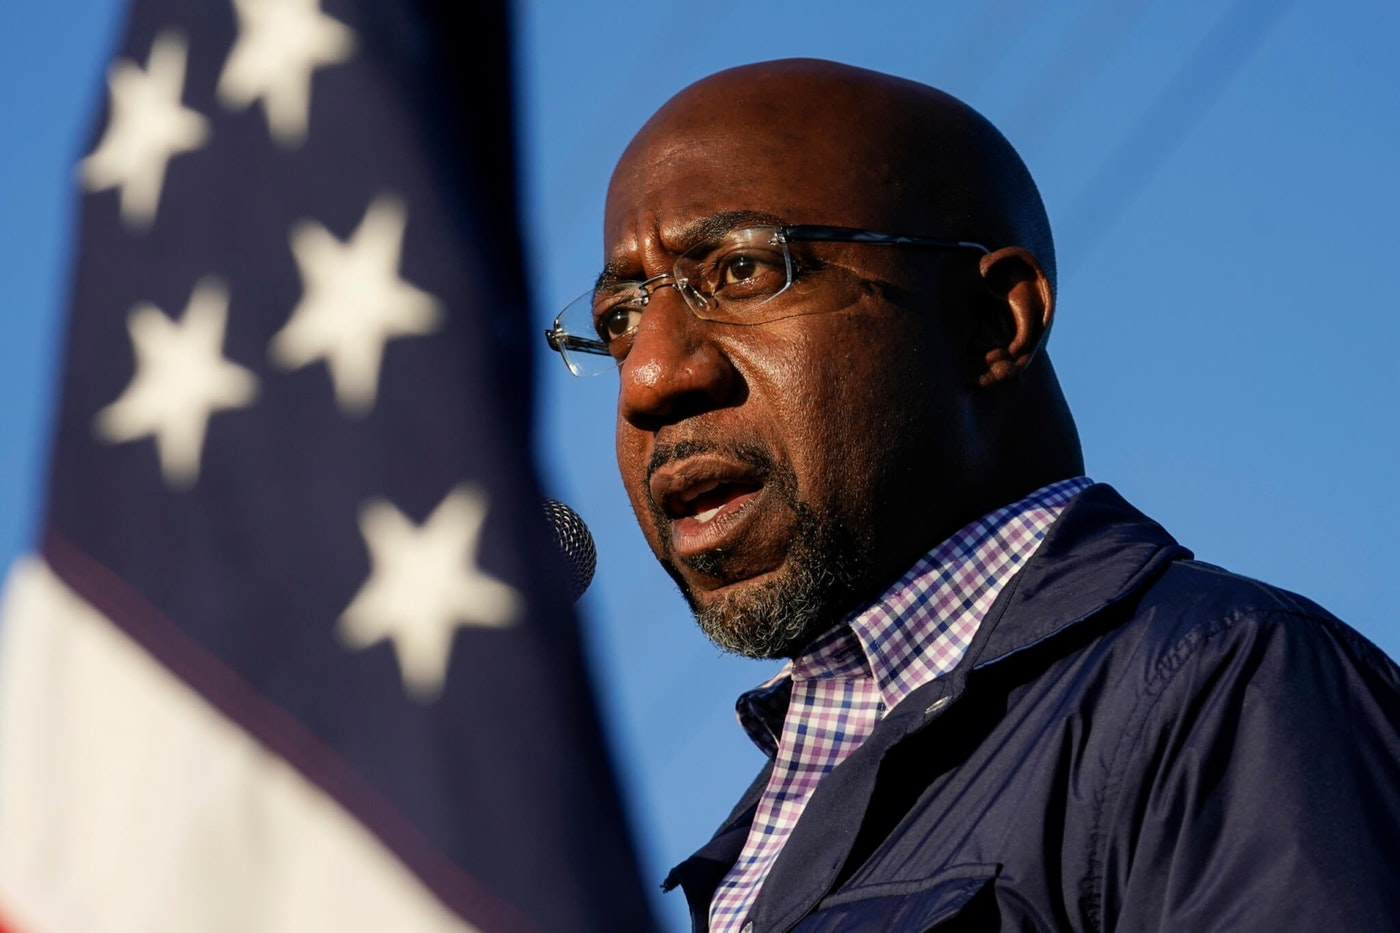 In this Nov. 15, 2020, file photo Raphael Warnock, a Democratic candidate for the U.S. Senate, speaks during a campaign rally in Marietta, Ga. (AP Photo/Brynn Anderson, File)